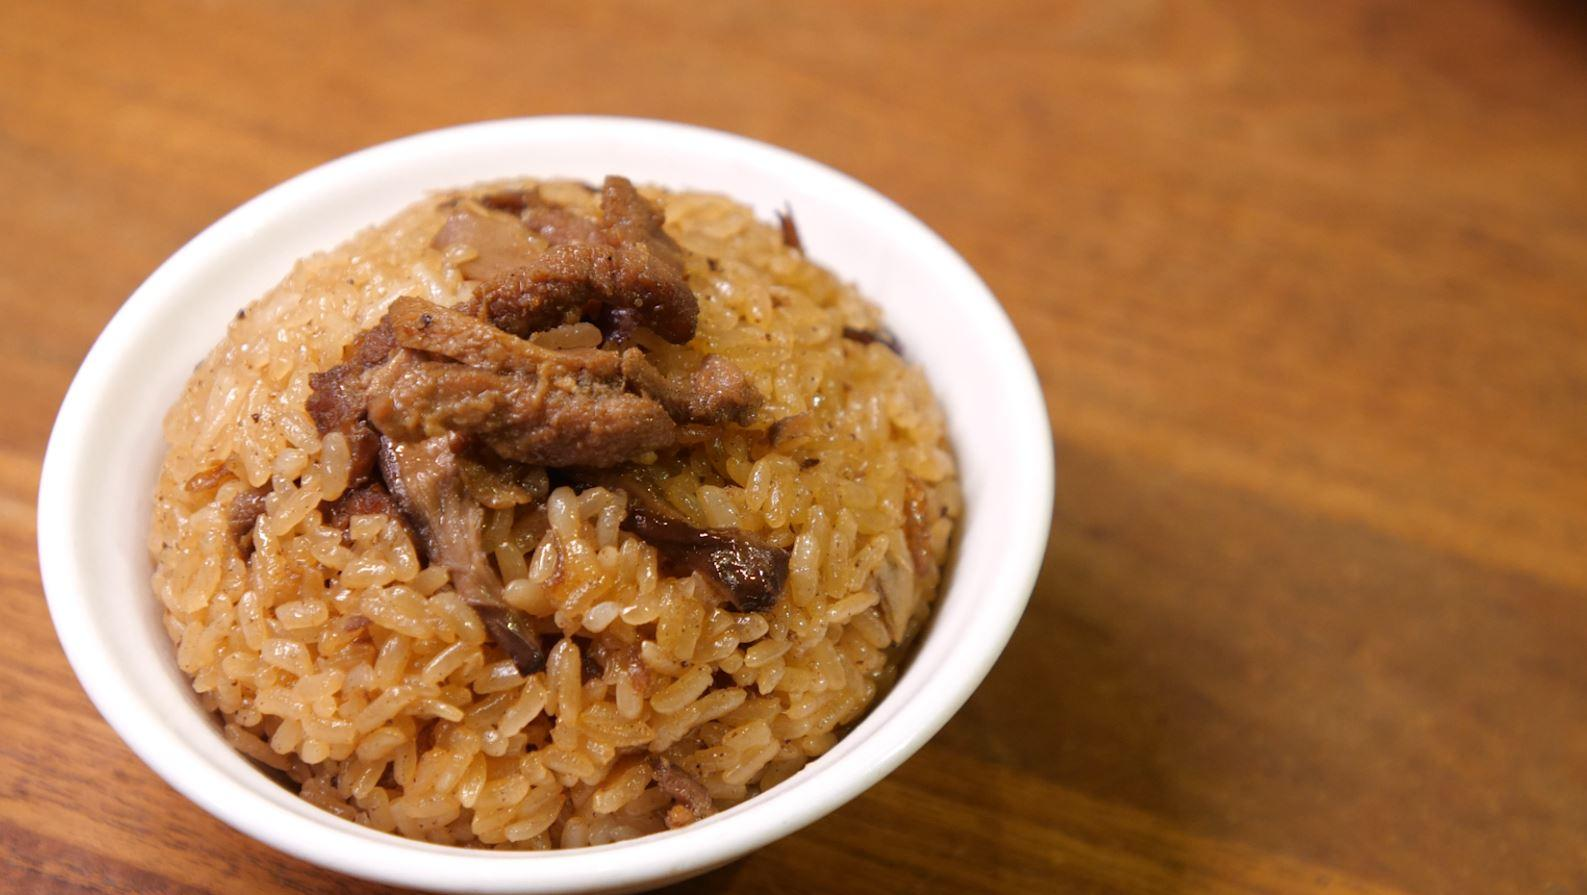 Glutinous oil rice is one of Shuang Yue's signature dishes.